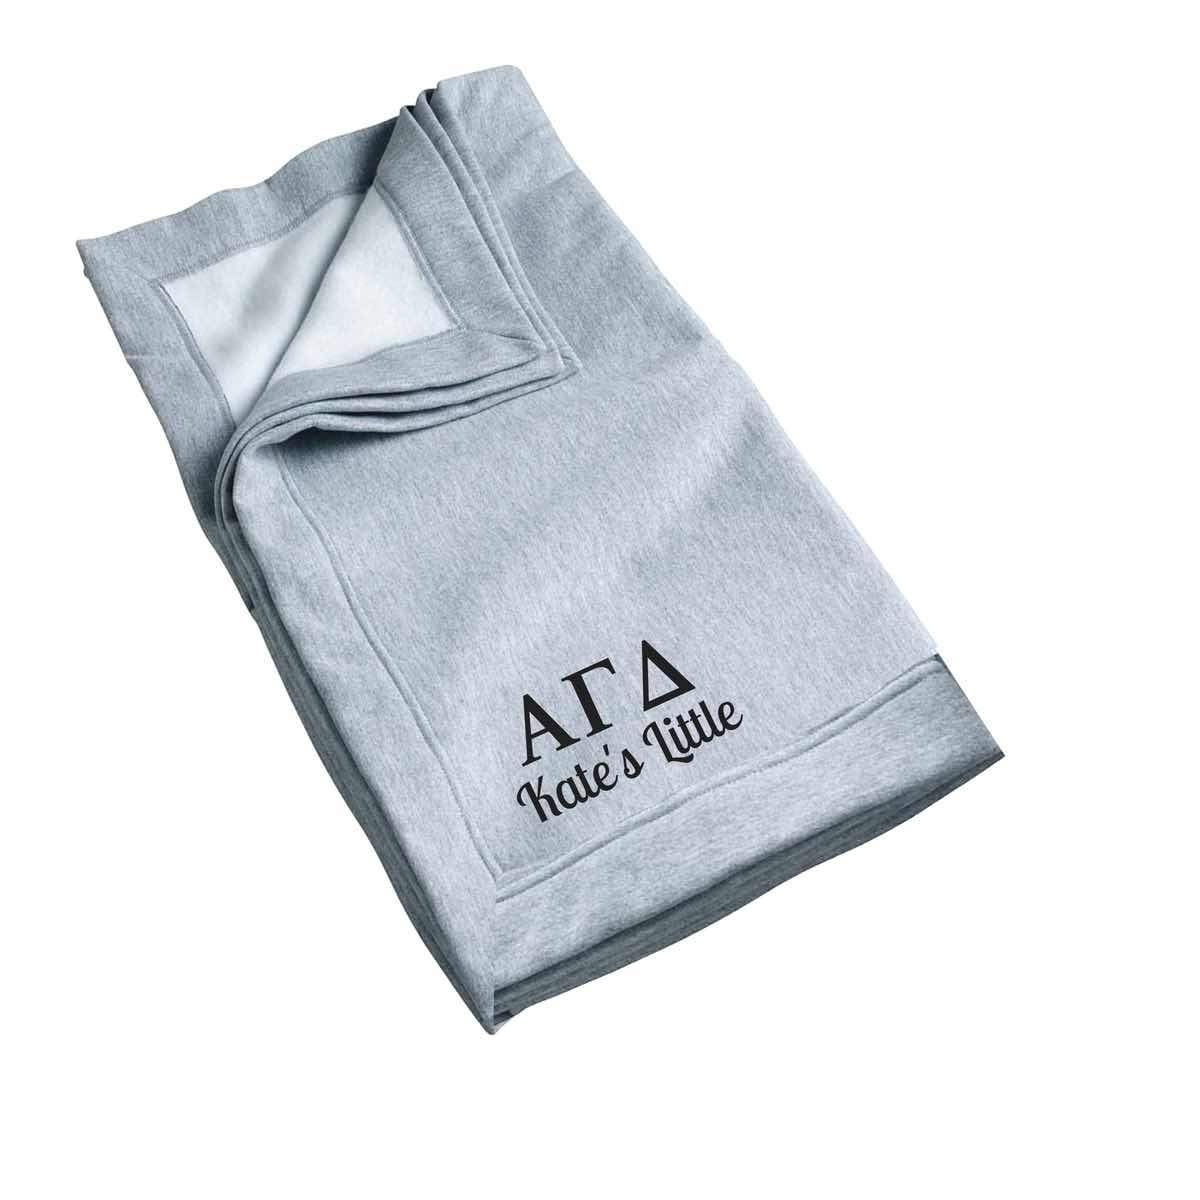 Alpha Gamma Delta Little Blanket, Recommended One Size Fits All Personalized Big Little Gift